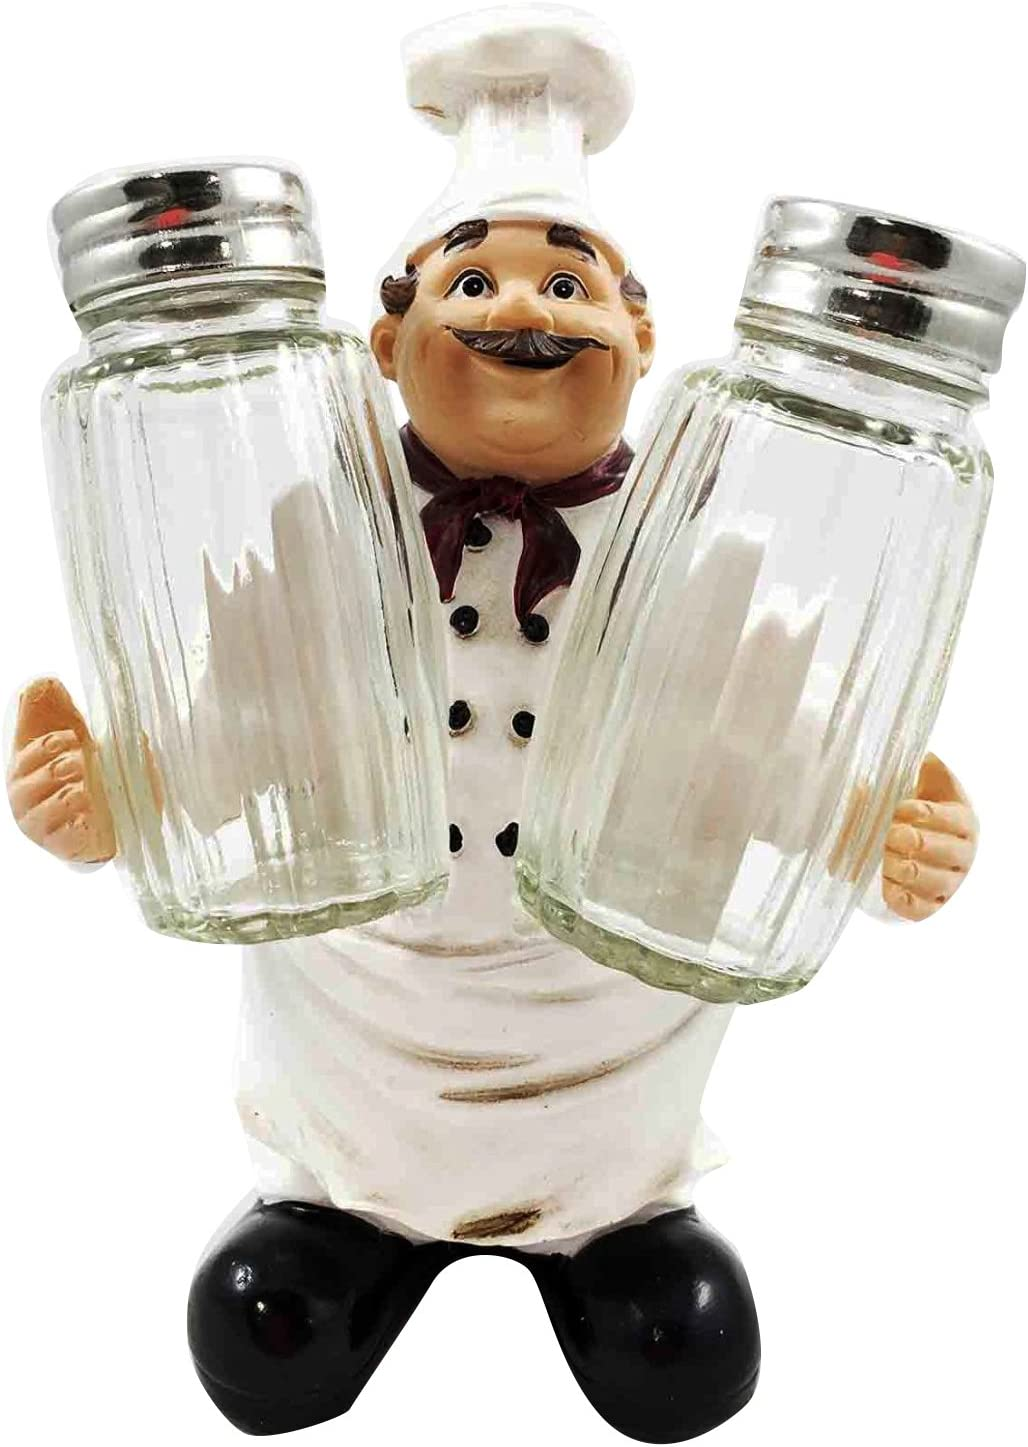 Ebros French Fat Bistro Chef Hugging Seasons and Spice Salt Pepper Shaker Holder Figurine Stand Iron Chef Sous Food Taster Cook Decor Statue